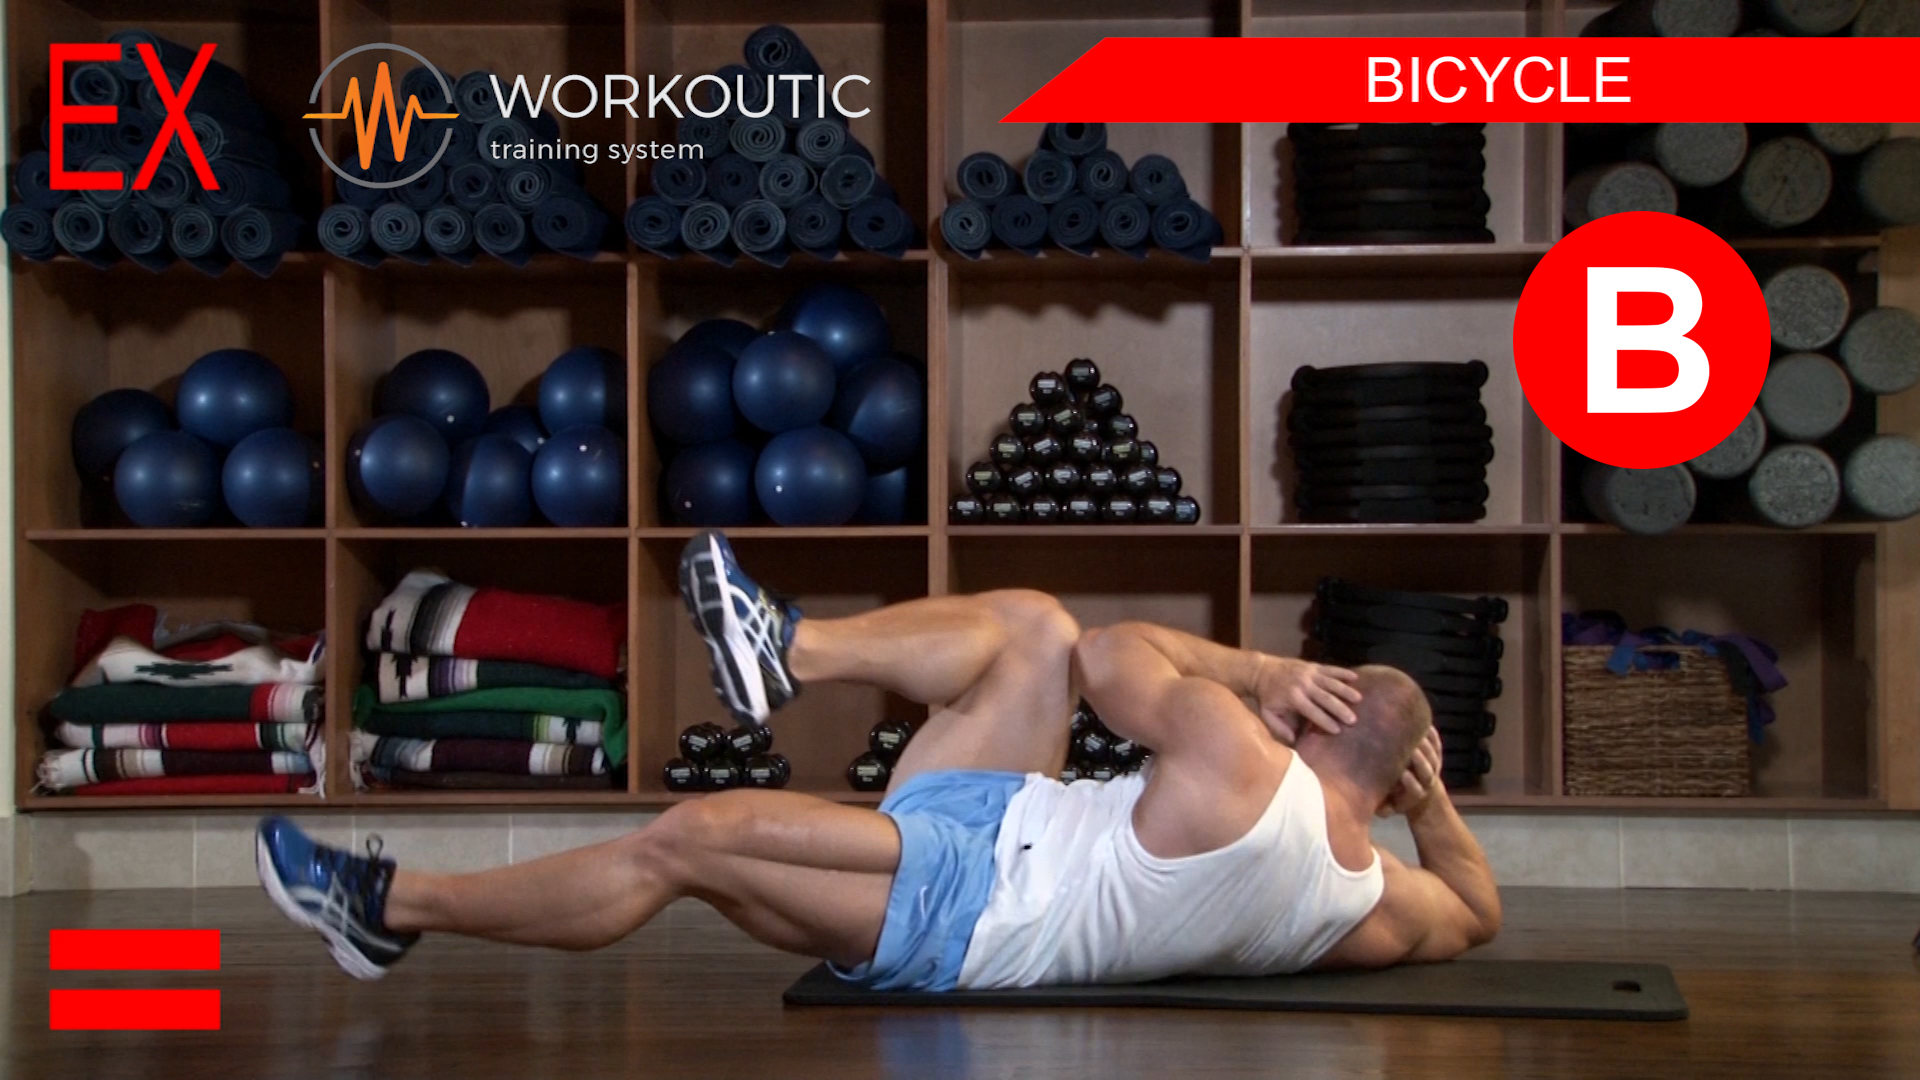 Abs Exercises - Workutic - 6 pack special - Bicycle Exhale